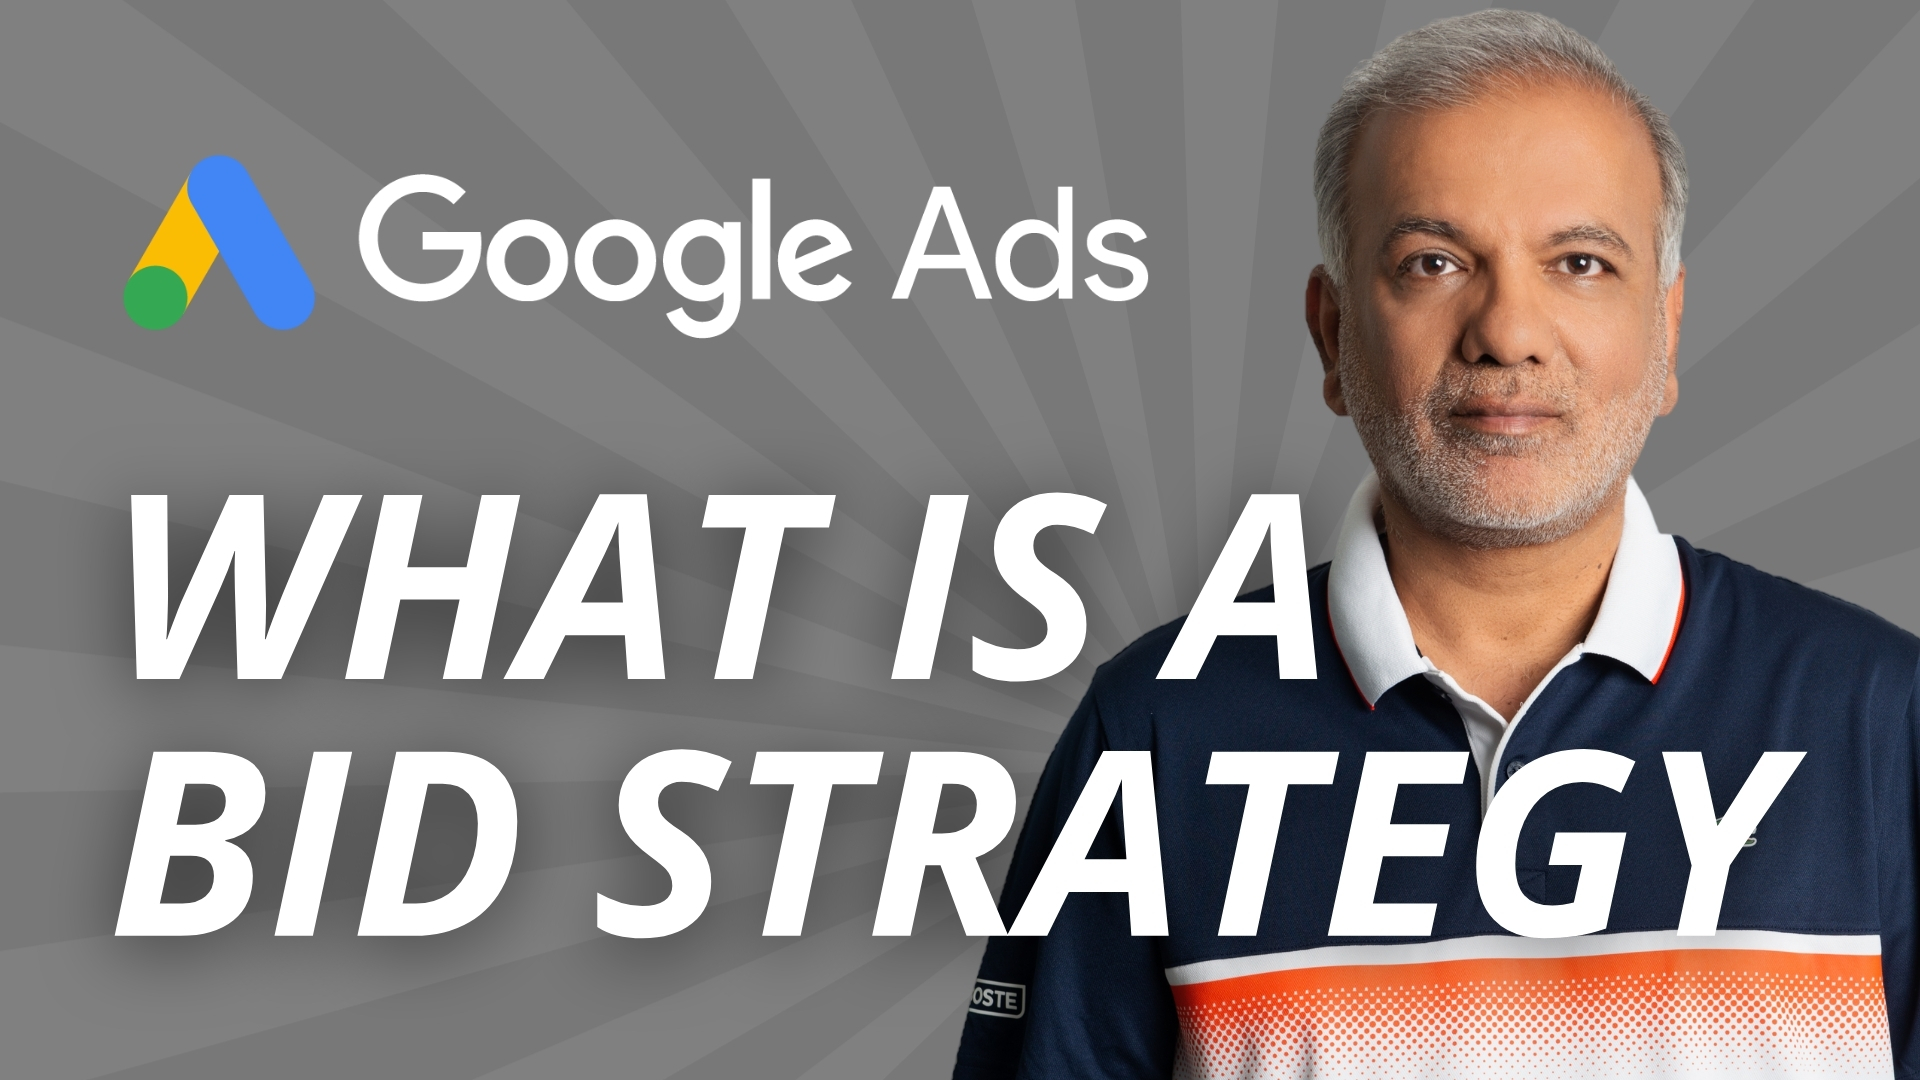 What Is The Bid Strategy In Google Ads?